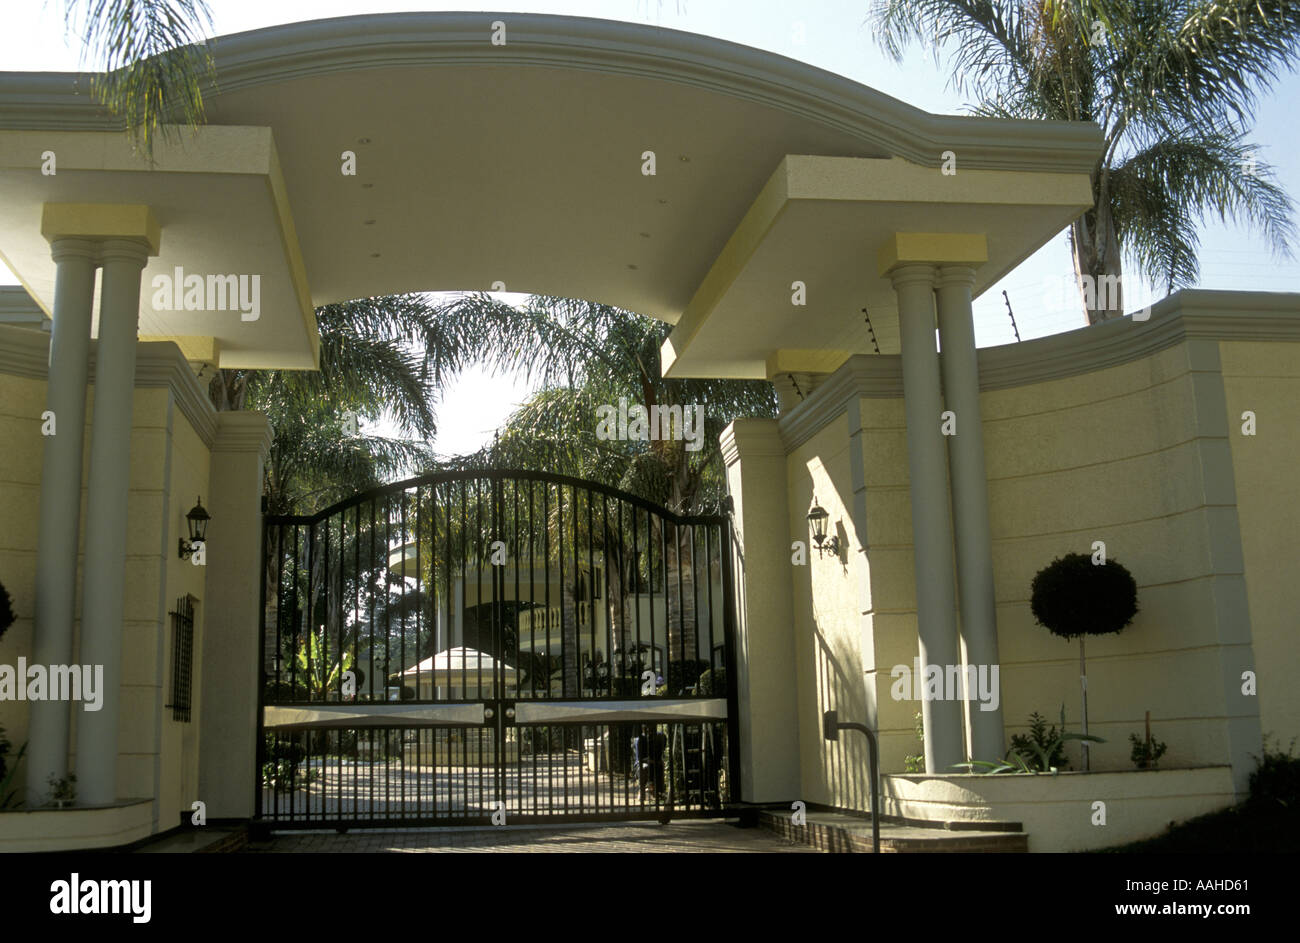 Imposing Wrought Iron Entrance Gates To Luxury Home In Rosebank A Suburb Of  Johannesburg South Africa